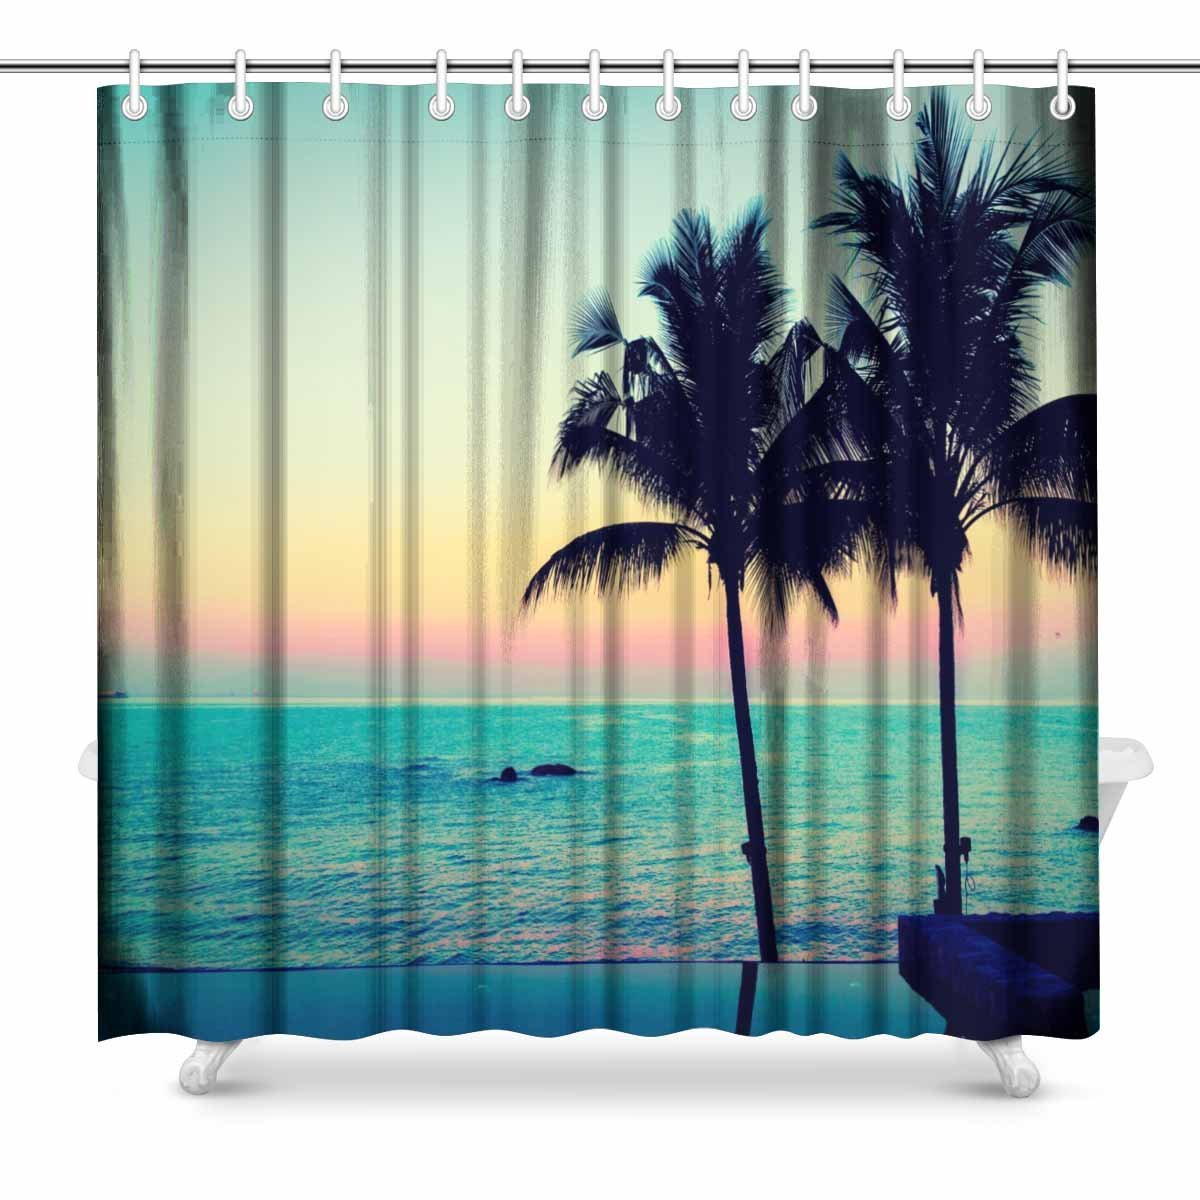 Us 29 99 Aplysia Palm Tree And Beautiful Luxury Hotel Swimming Pool At Twilight Times Vintage Filter Bathroom Decor Shower Curtains In Shower